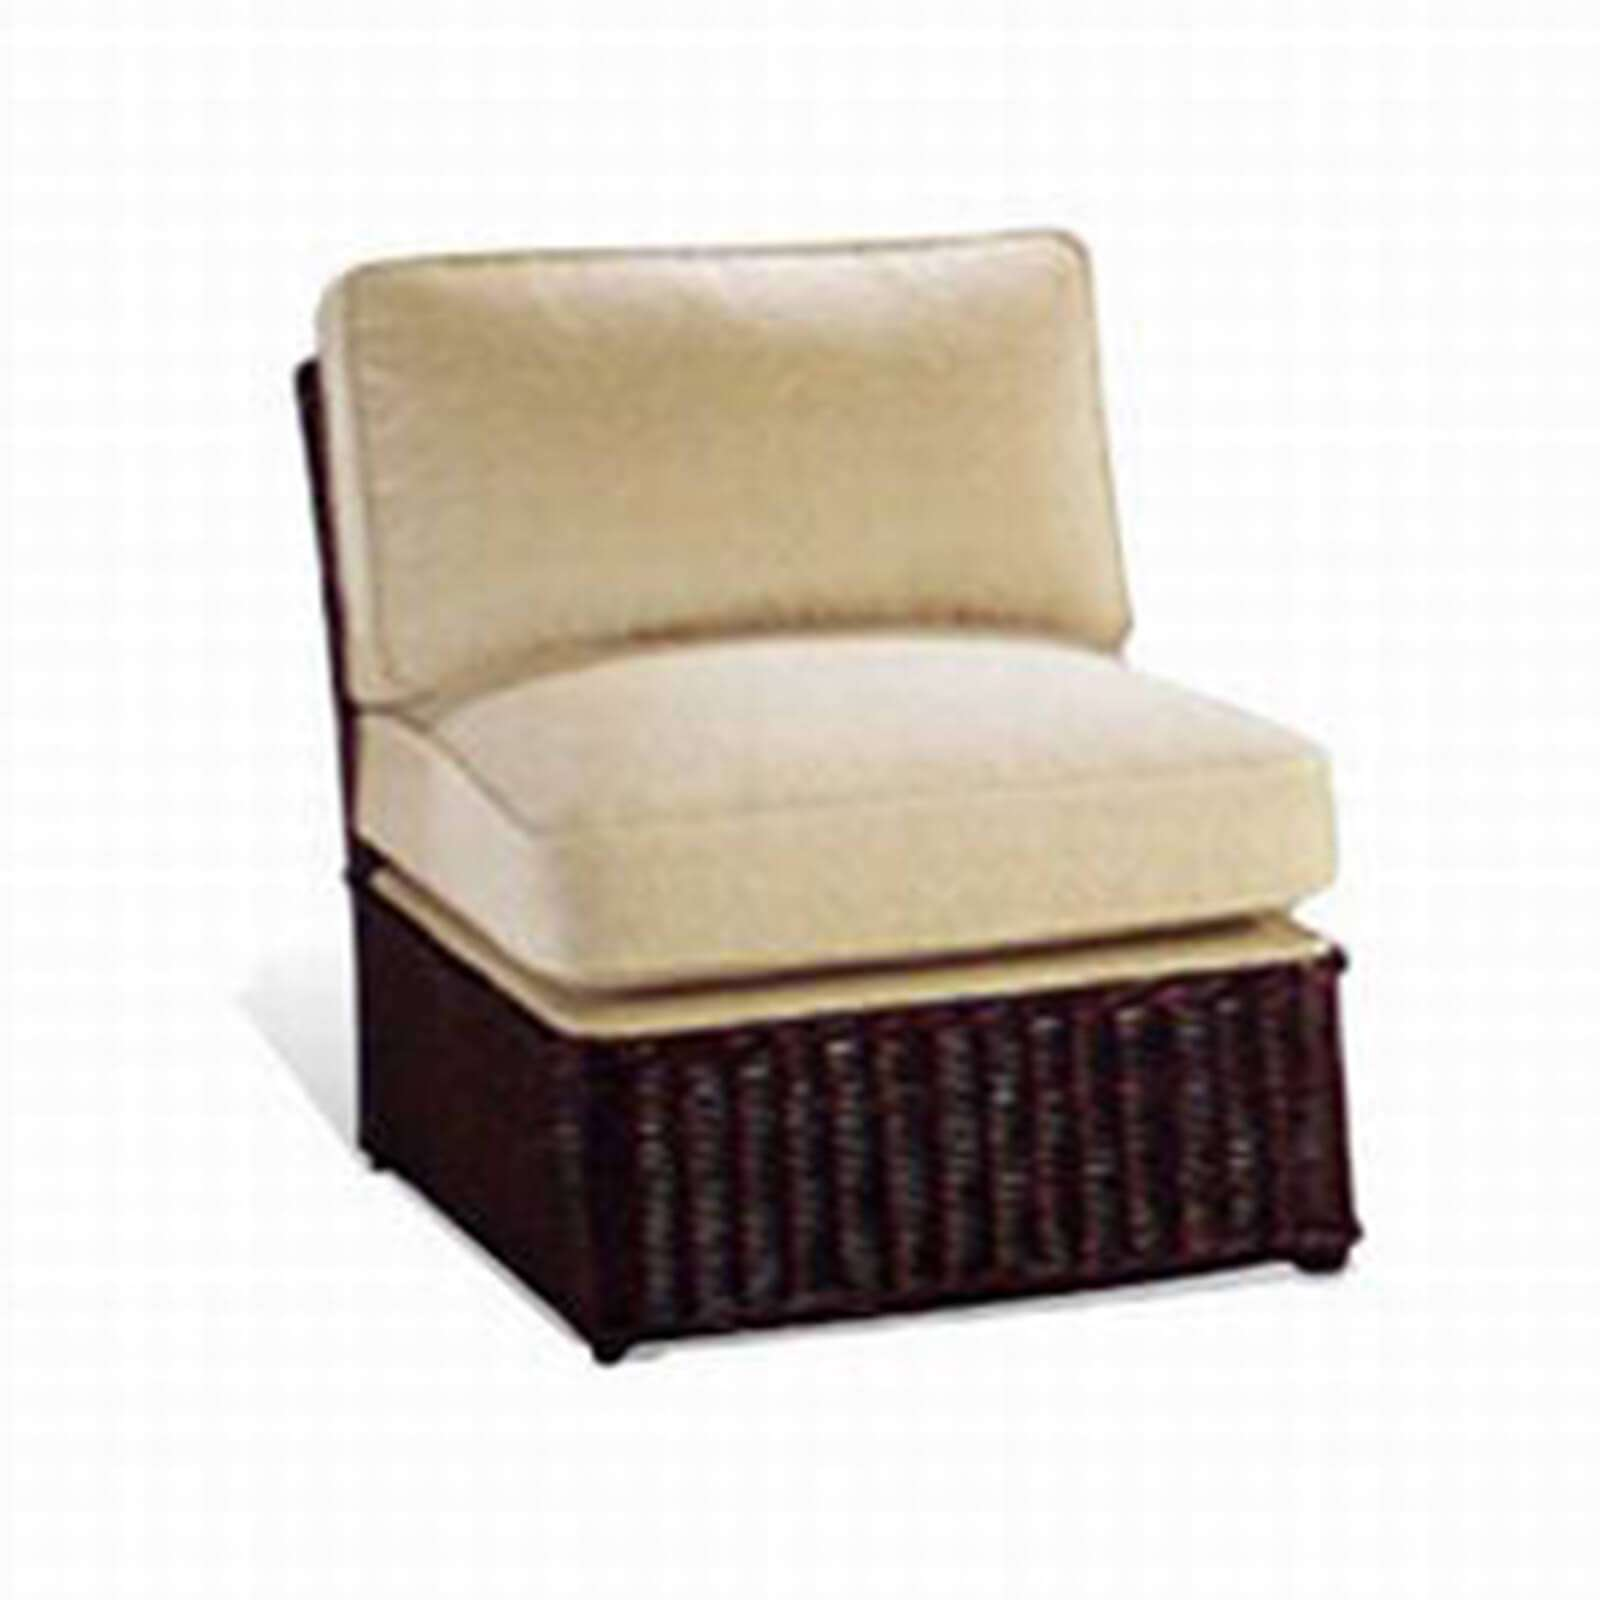 Wicker Slipper Chair Stuart Membery Home Collection